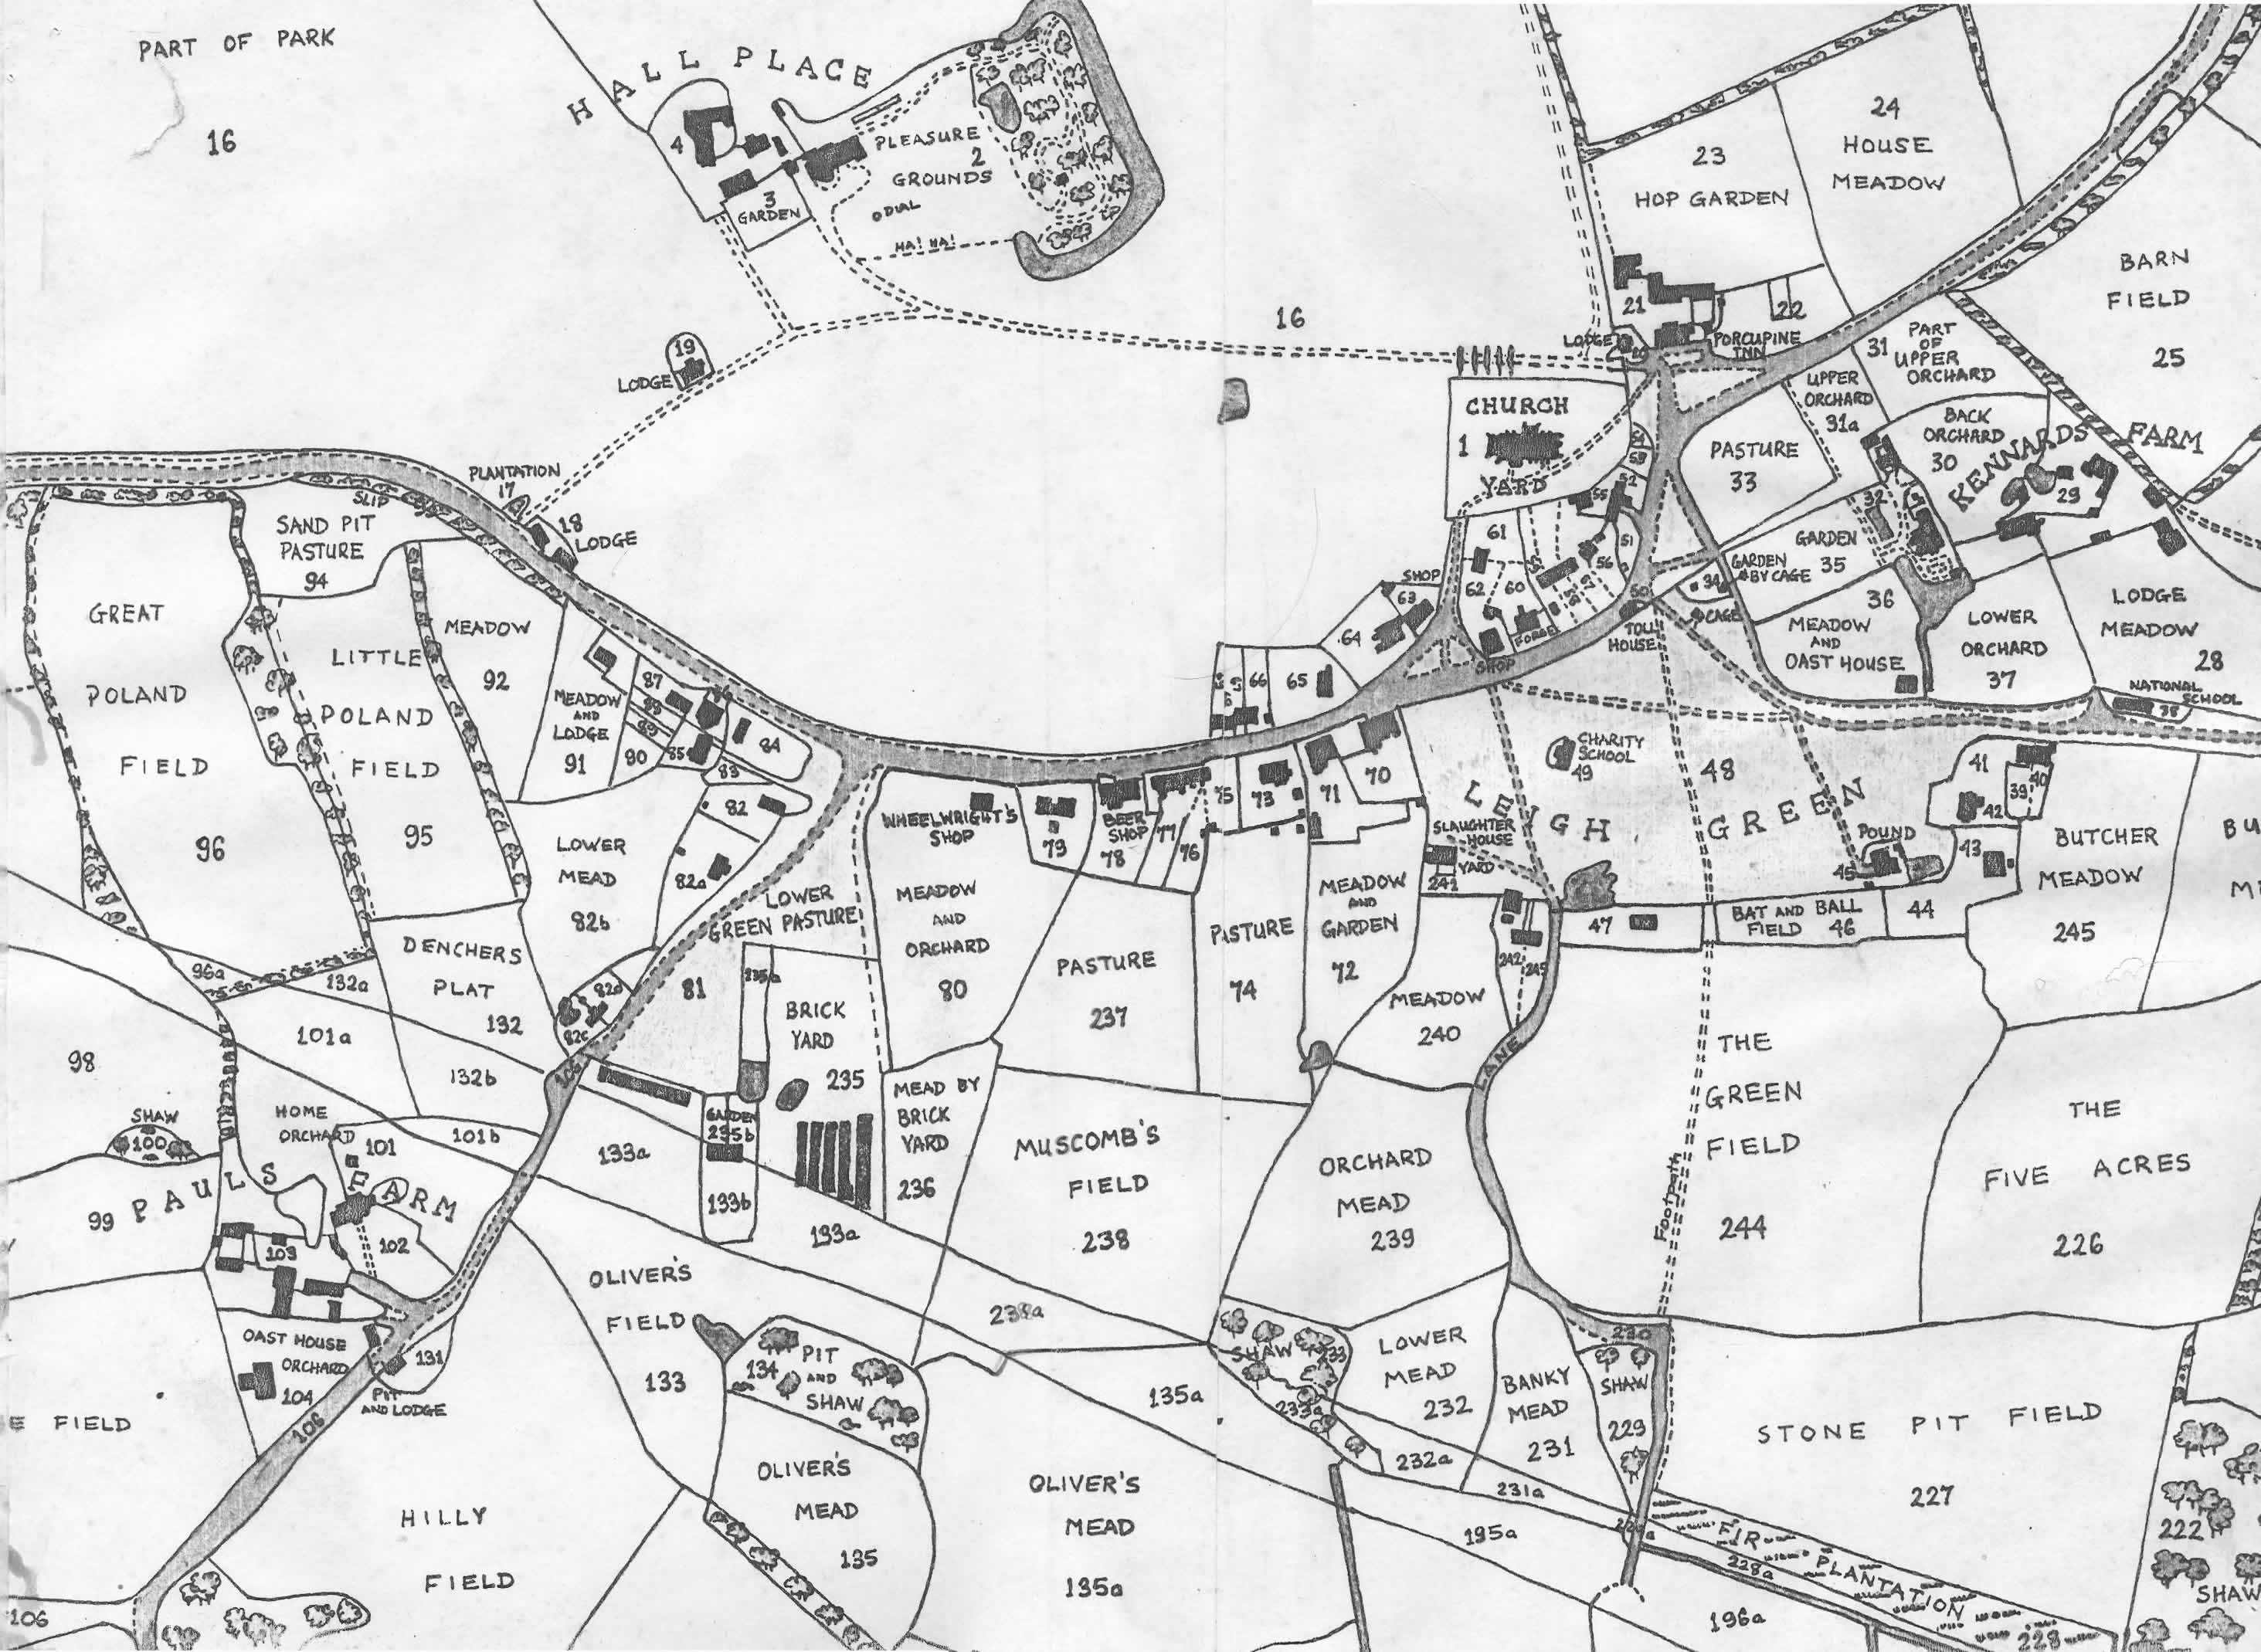 Tithe Map, 184. Central section of Parish around Hall Place